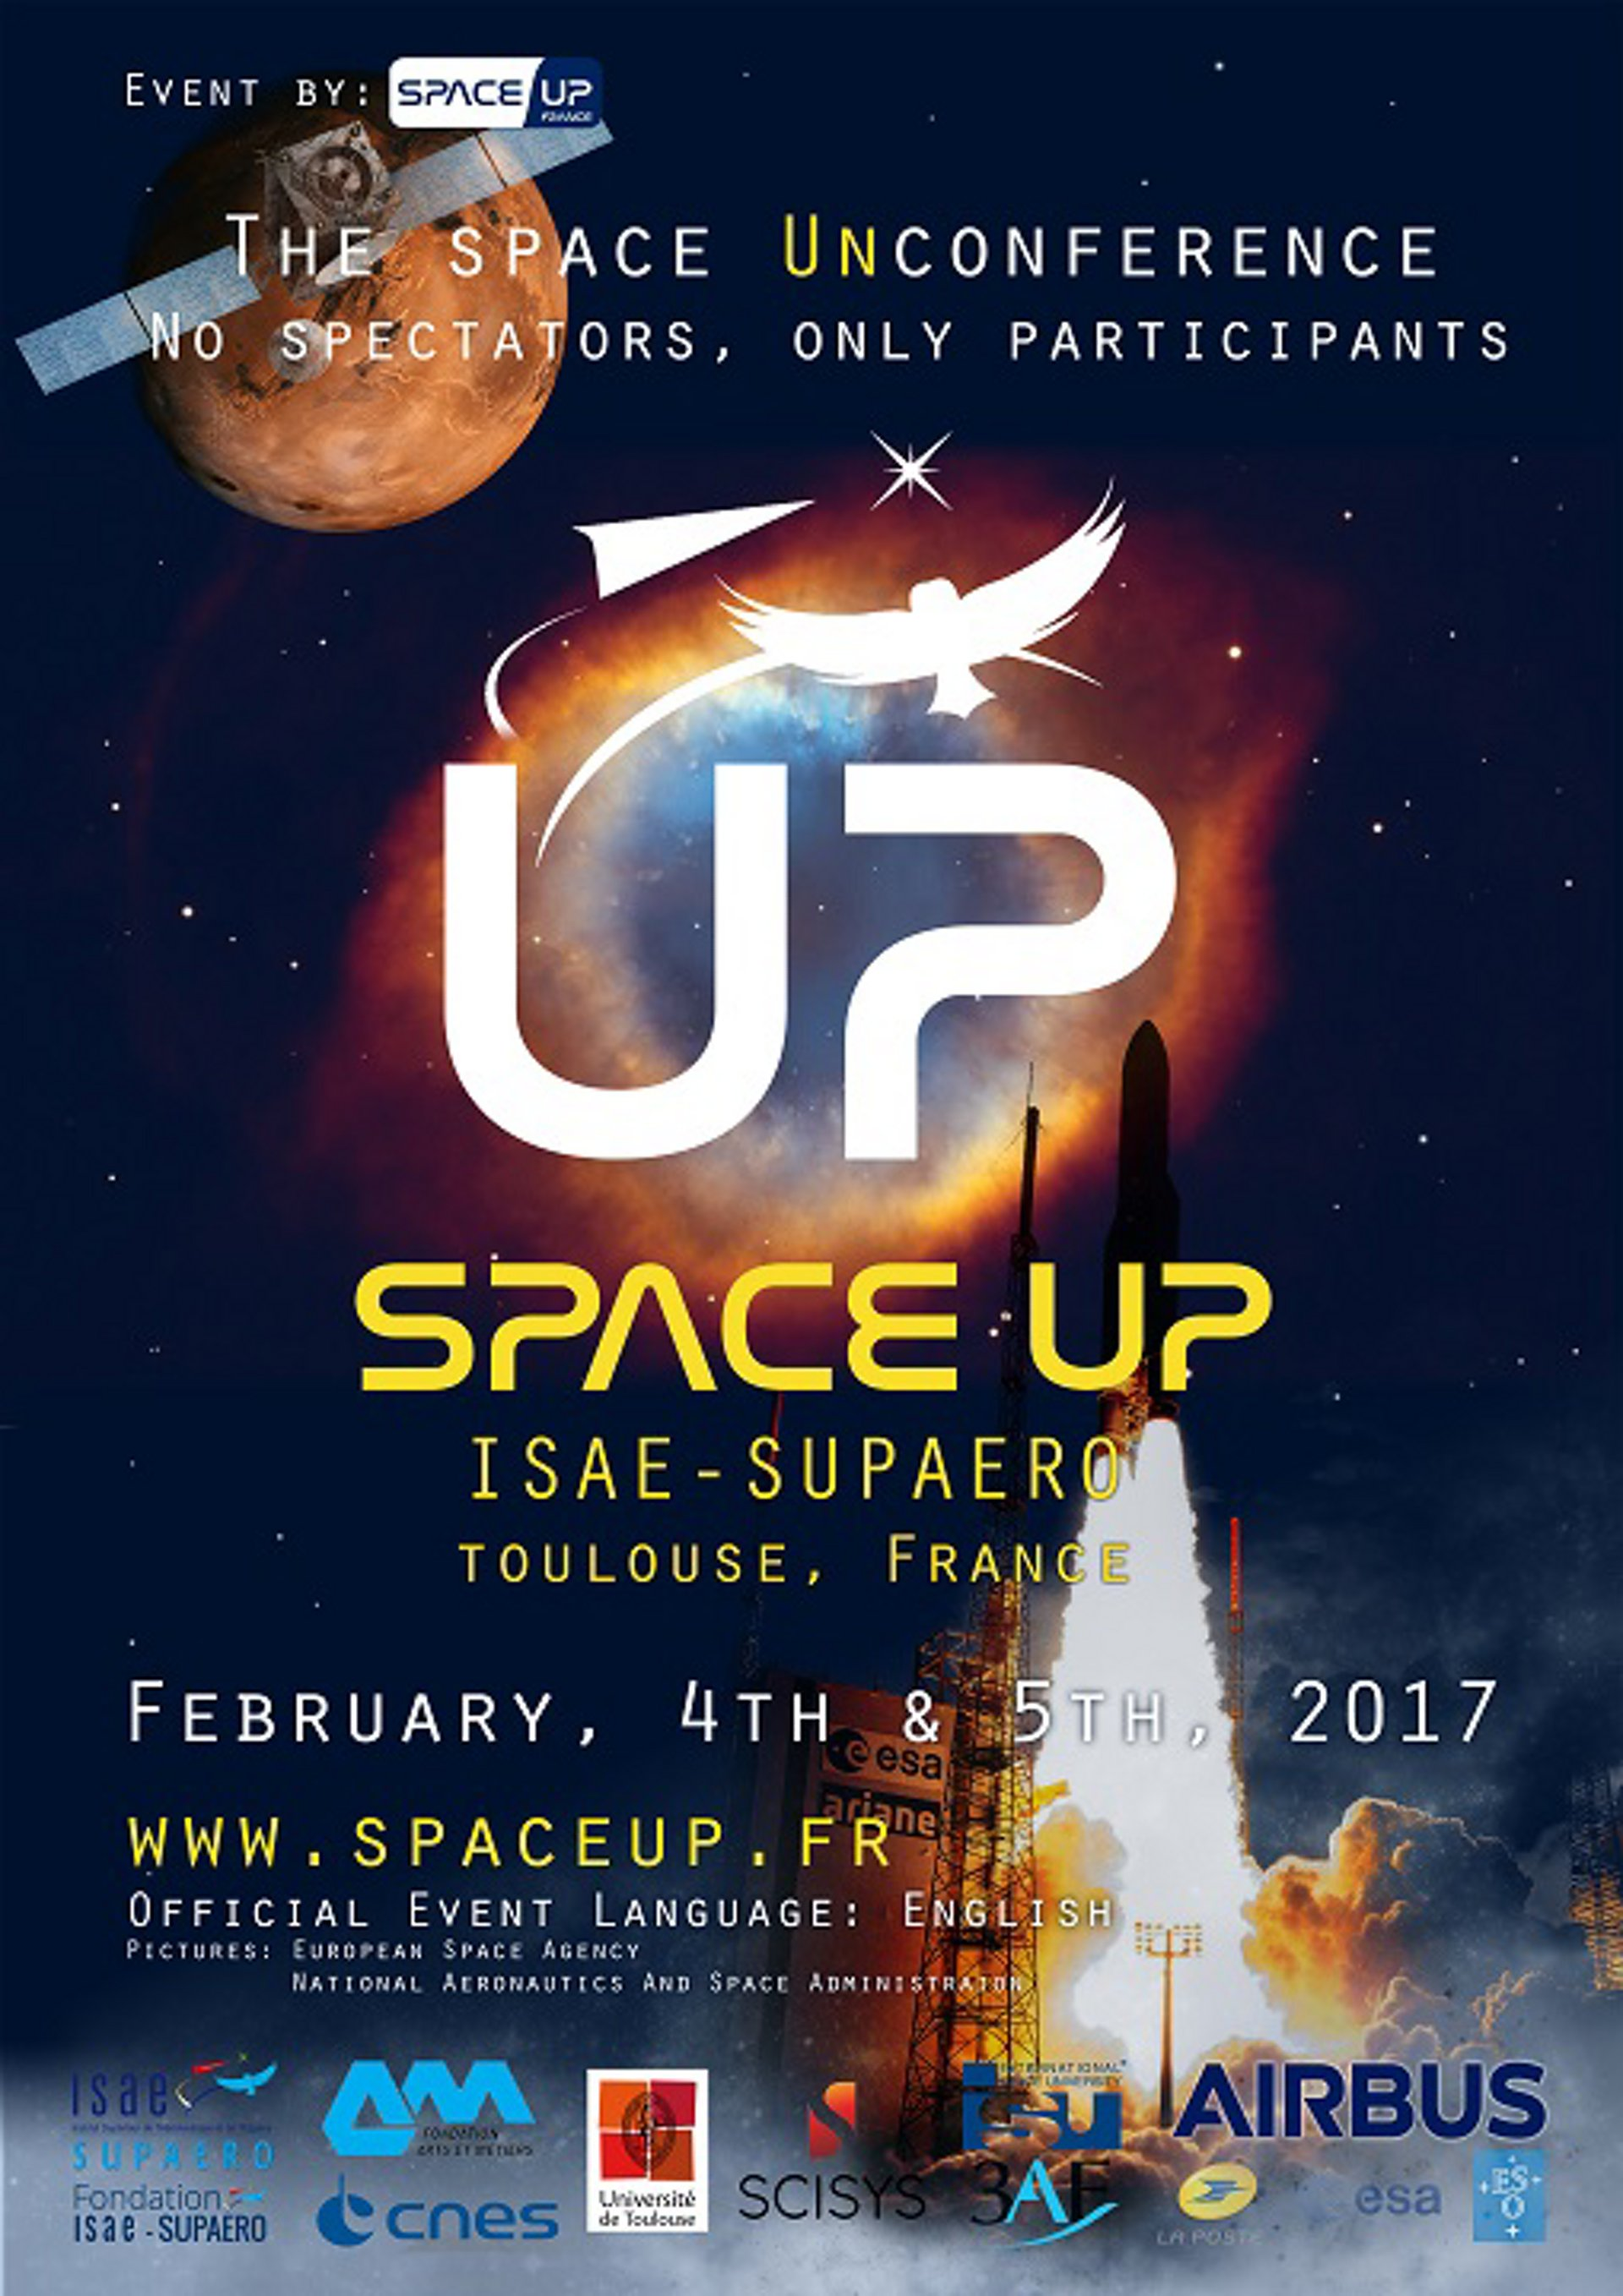 SpaceUp Event in Toulouse support by Airbus